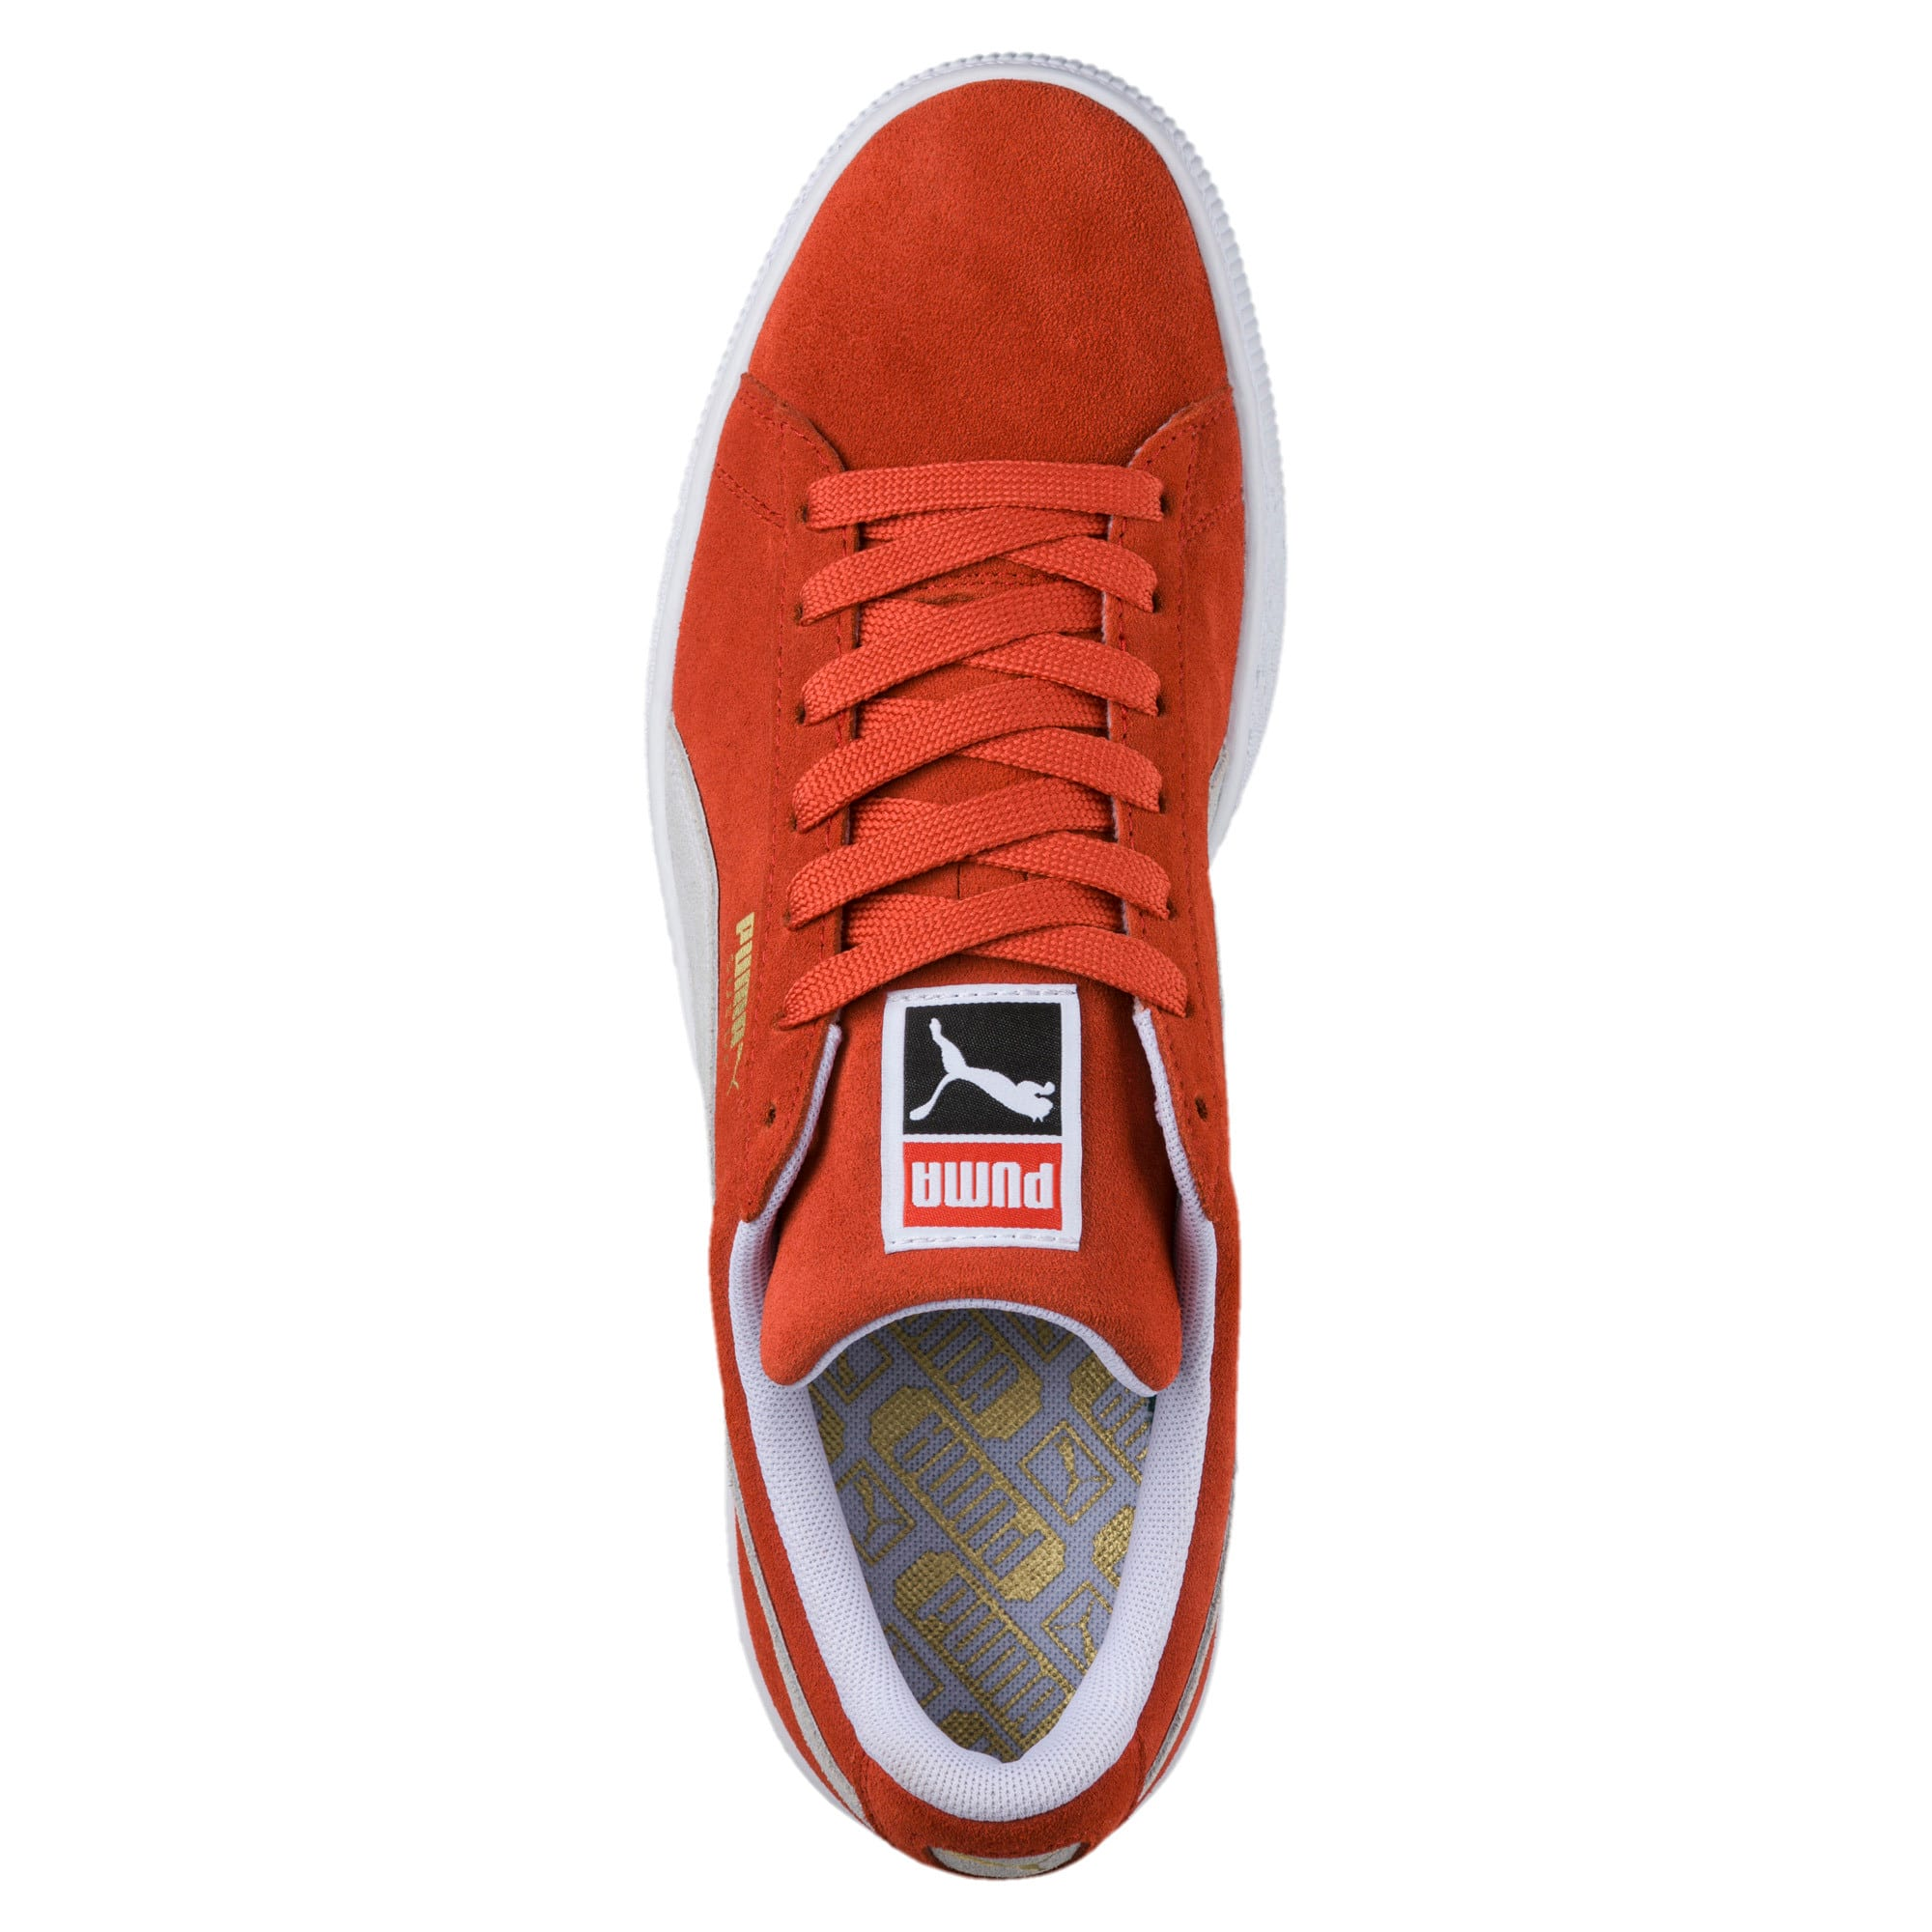 Thumbnail 5 of Suede Classic Trainers, Burnt Ochre-Puma White, medium-IND